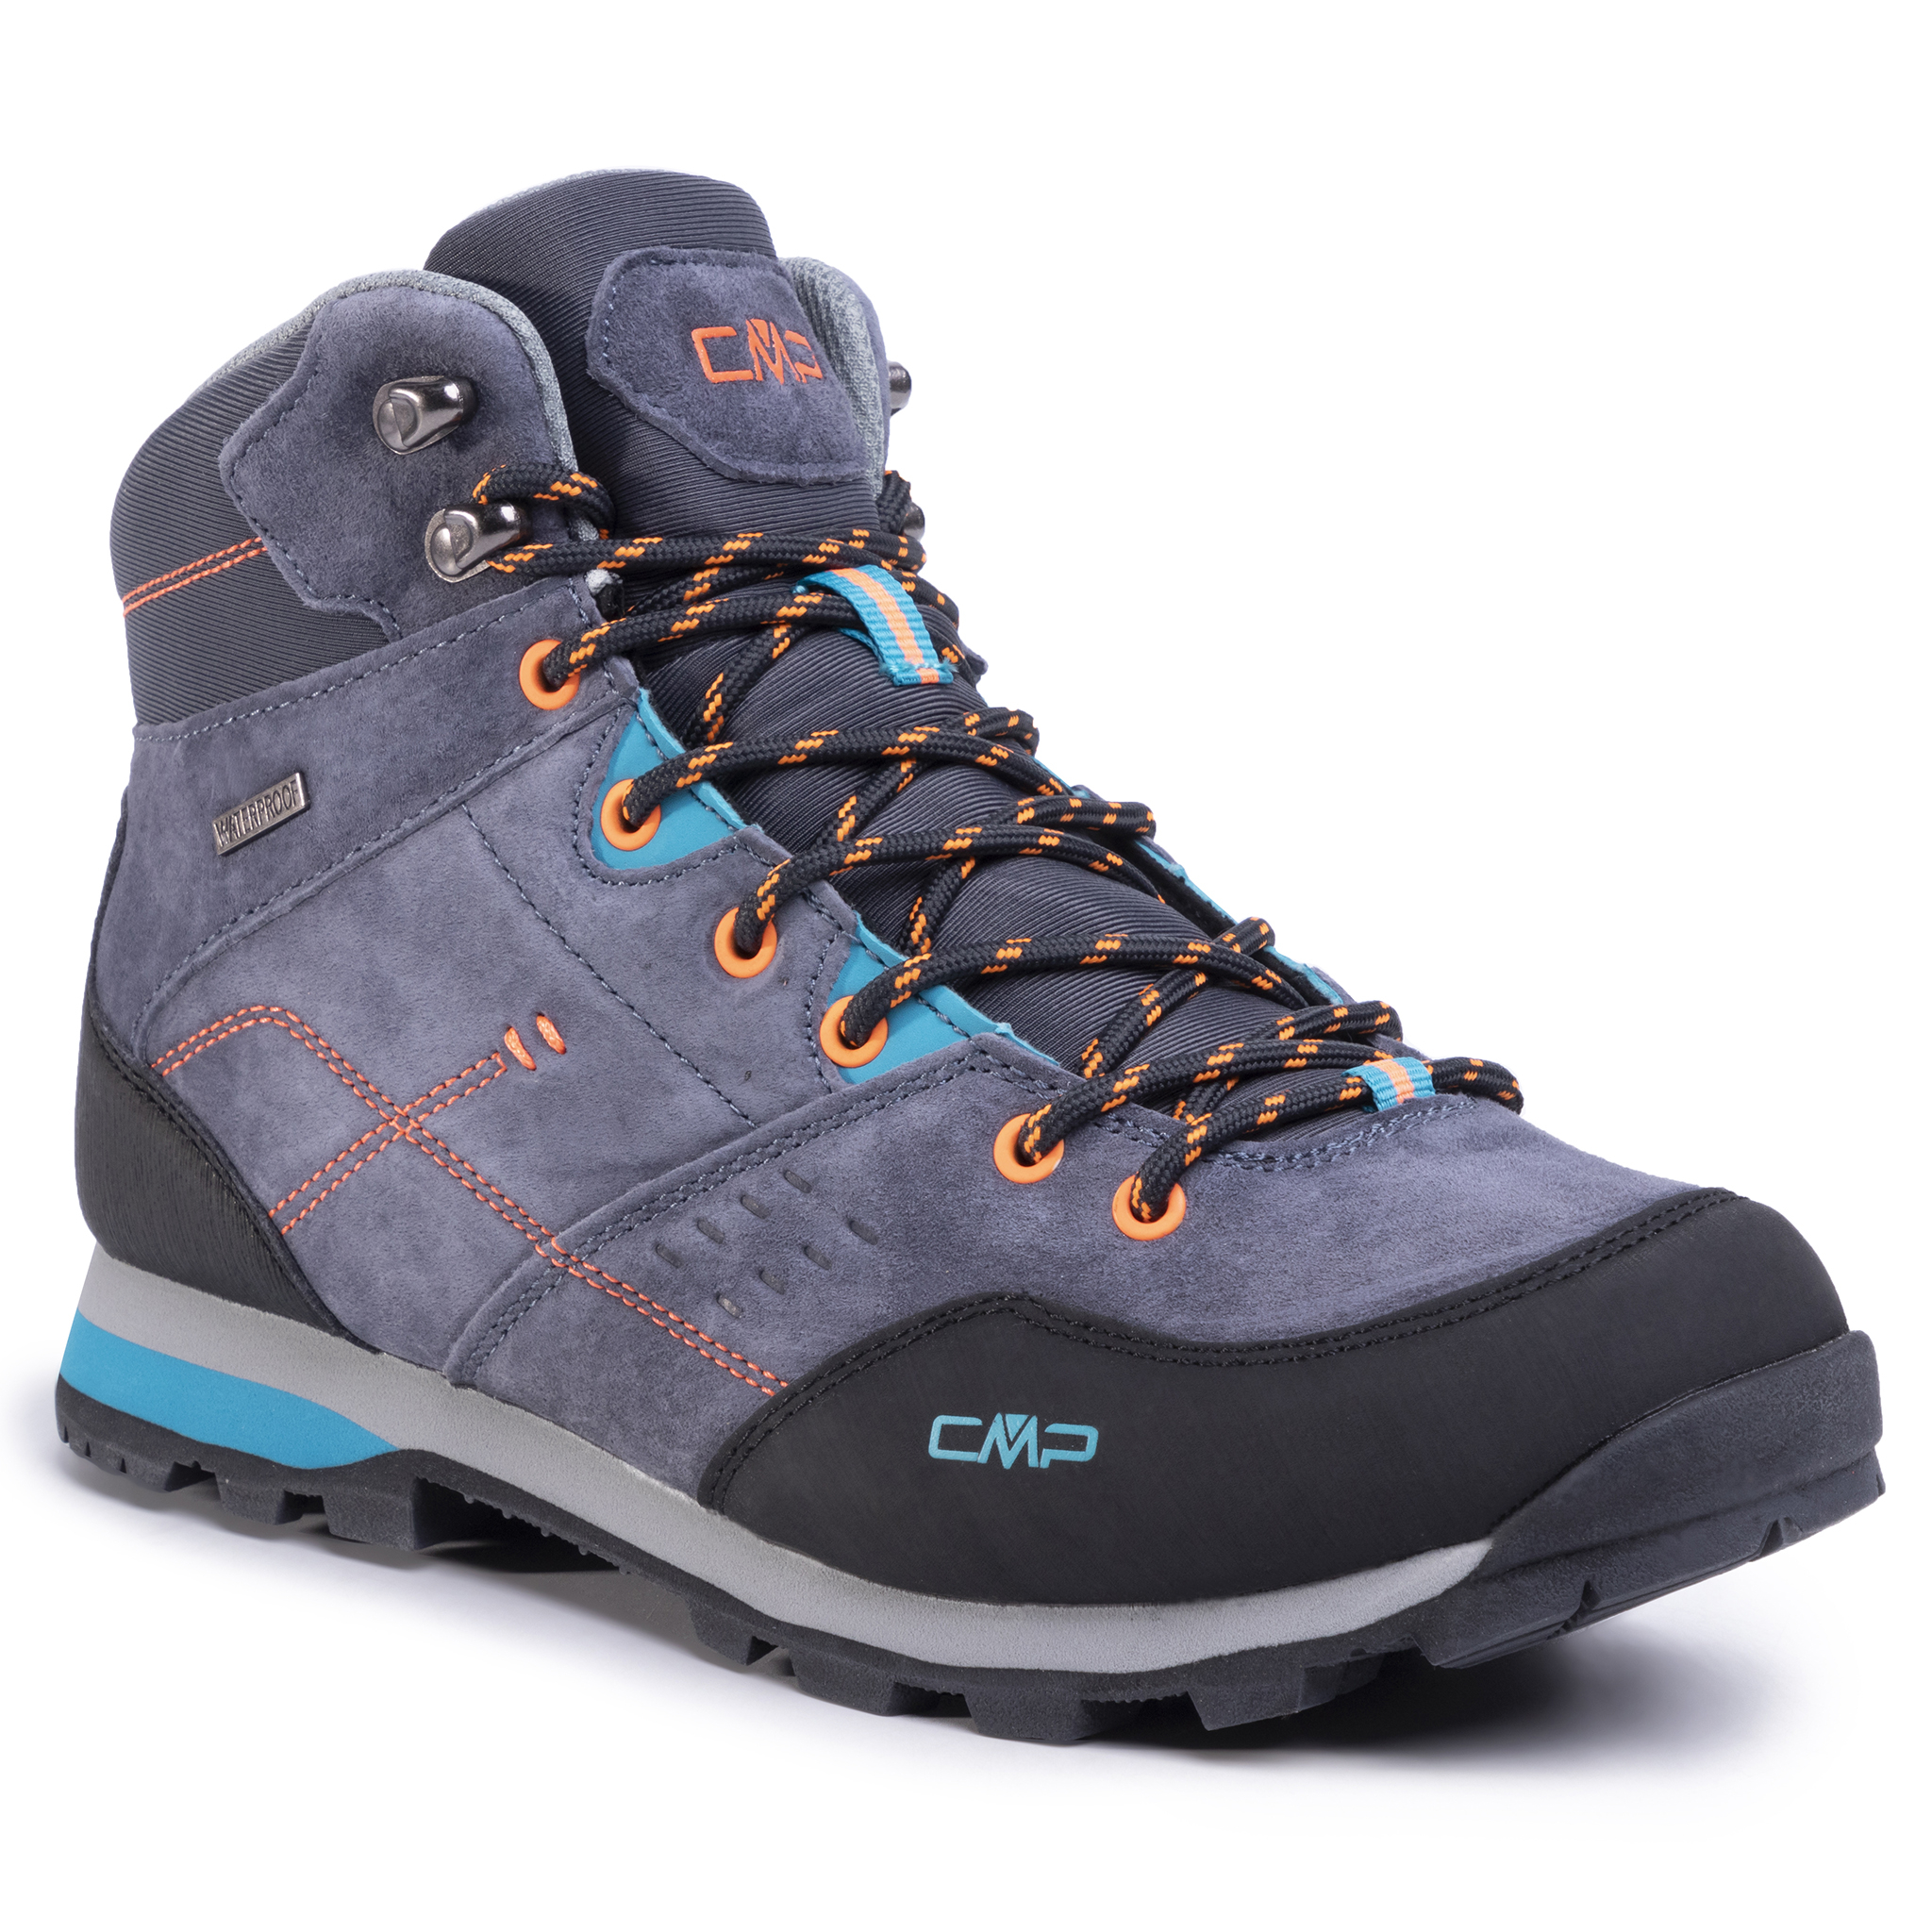 Trekkings Cmp - Alcor Mid Trekking Shoes Wp 39q4907 Antarcite U423 imagine epantofi.ro 2021